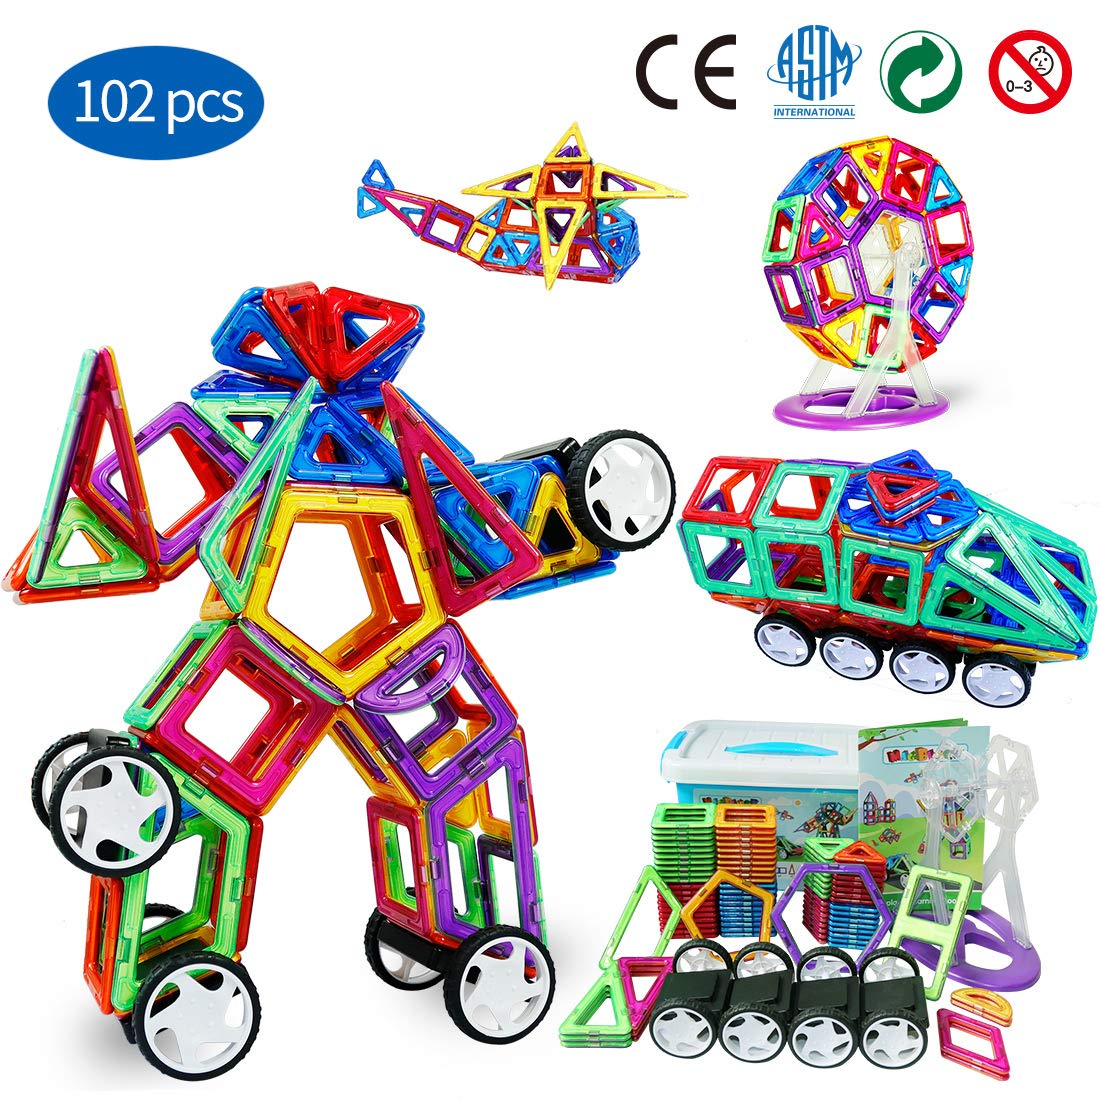 Magnetic Blocks STEM Educational Gifts and Toys Set for Boys,Magneitc Tiles are Best Birthday Gift for Kids 102PCS by Magblock